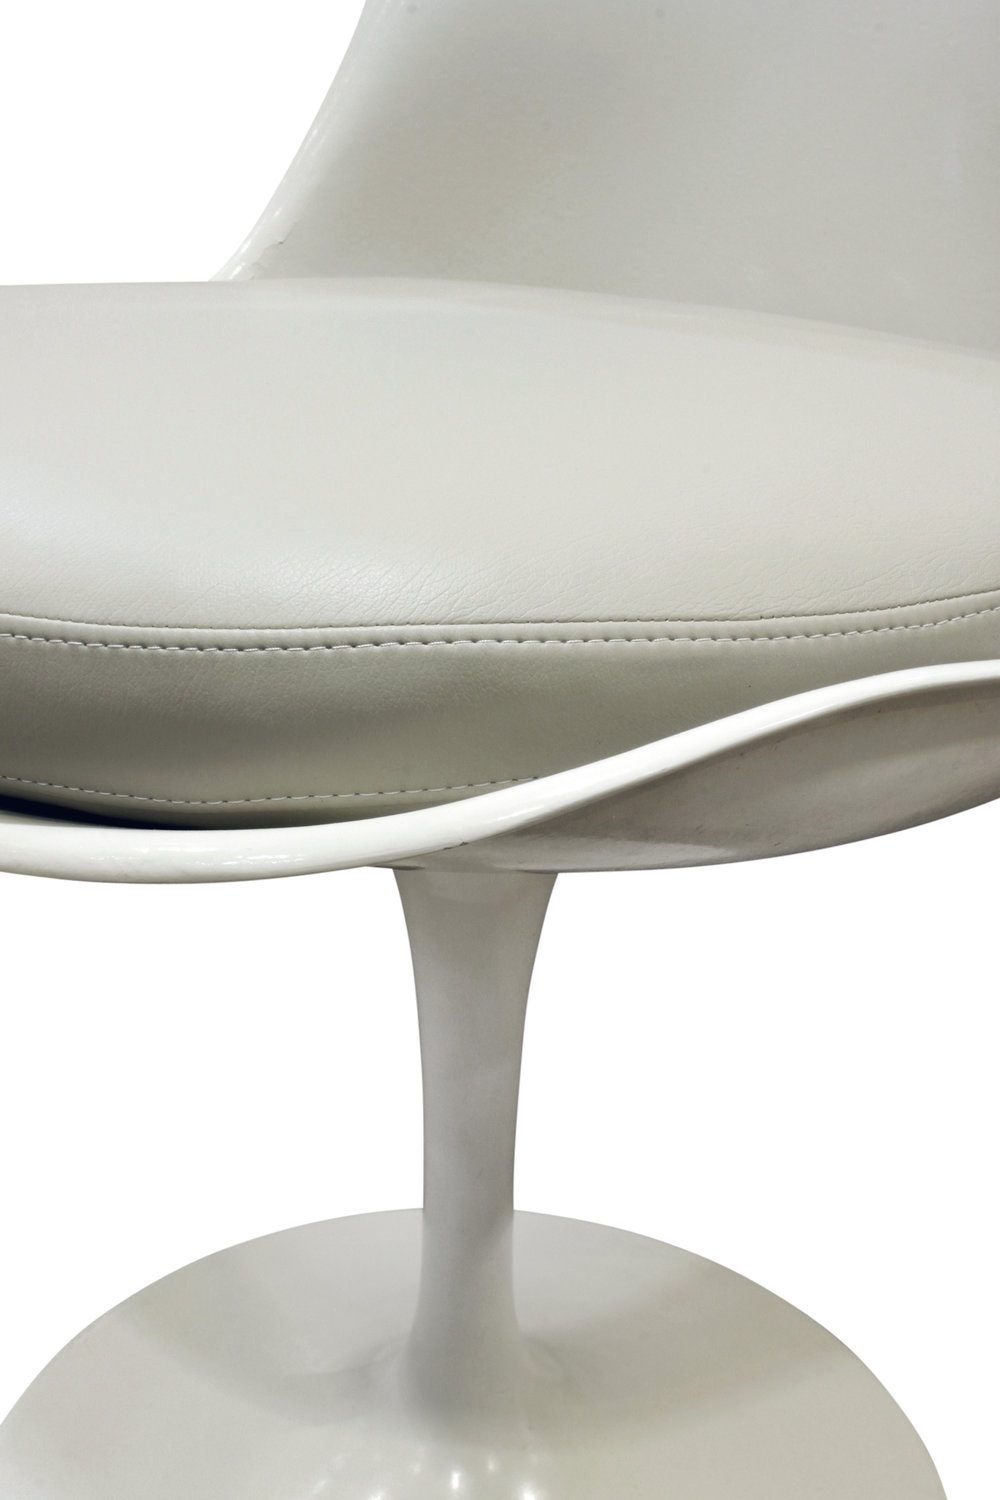 Saarinen 40 Tulip set 4 diningchairs179 cnr dtl.jpg